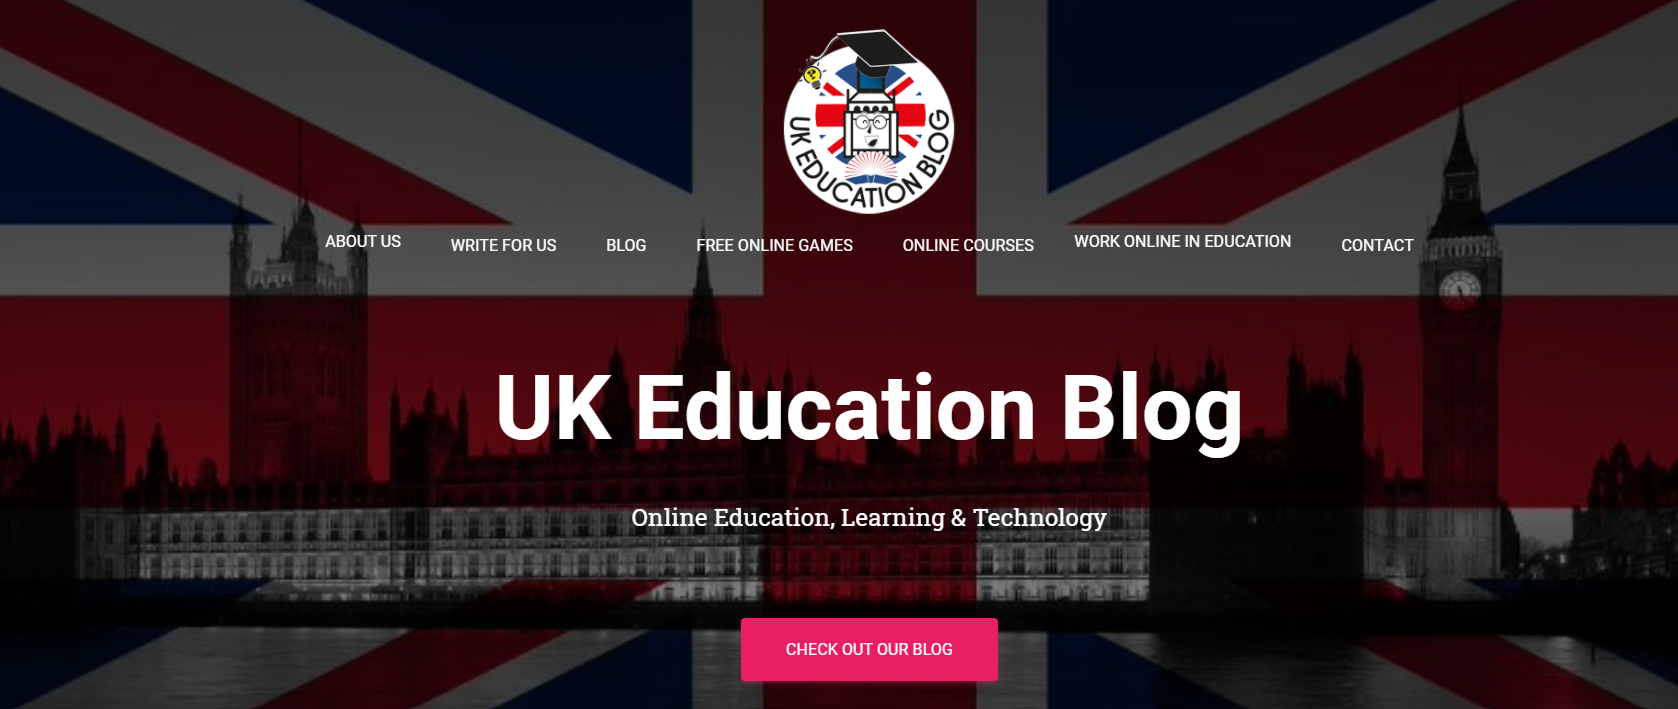 Best-Education-Blog-in-the-UK-for-education-news